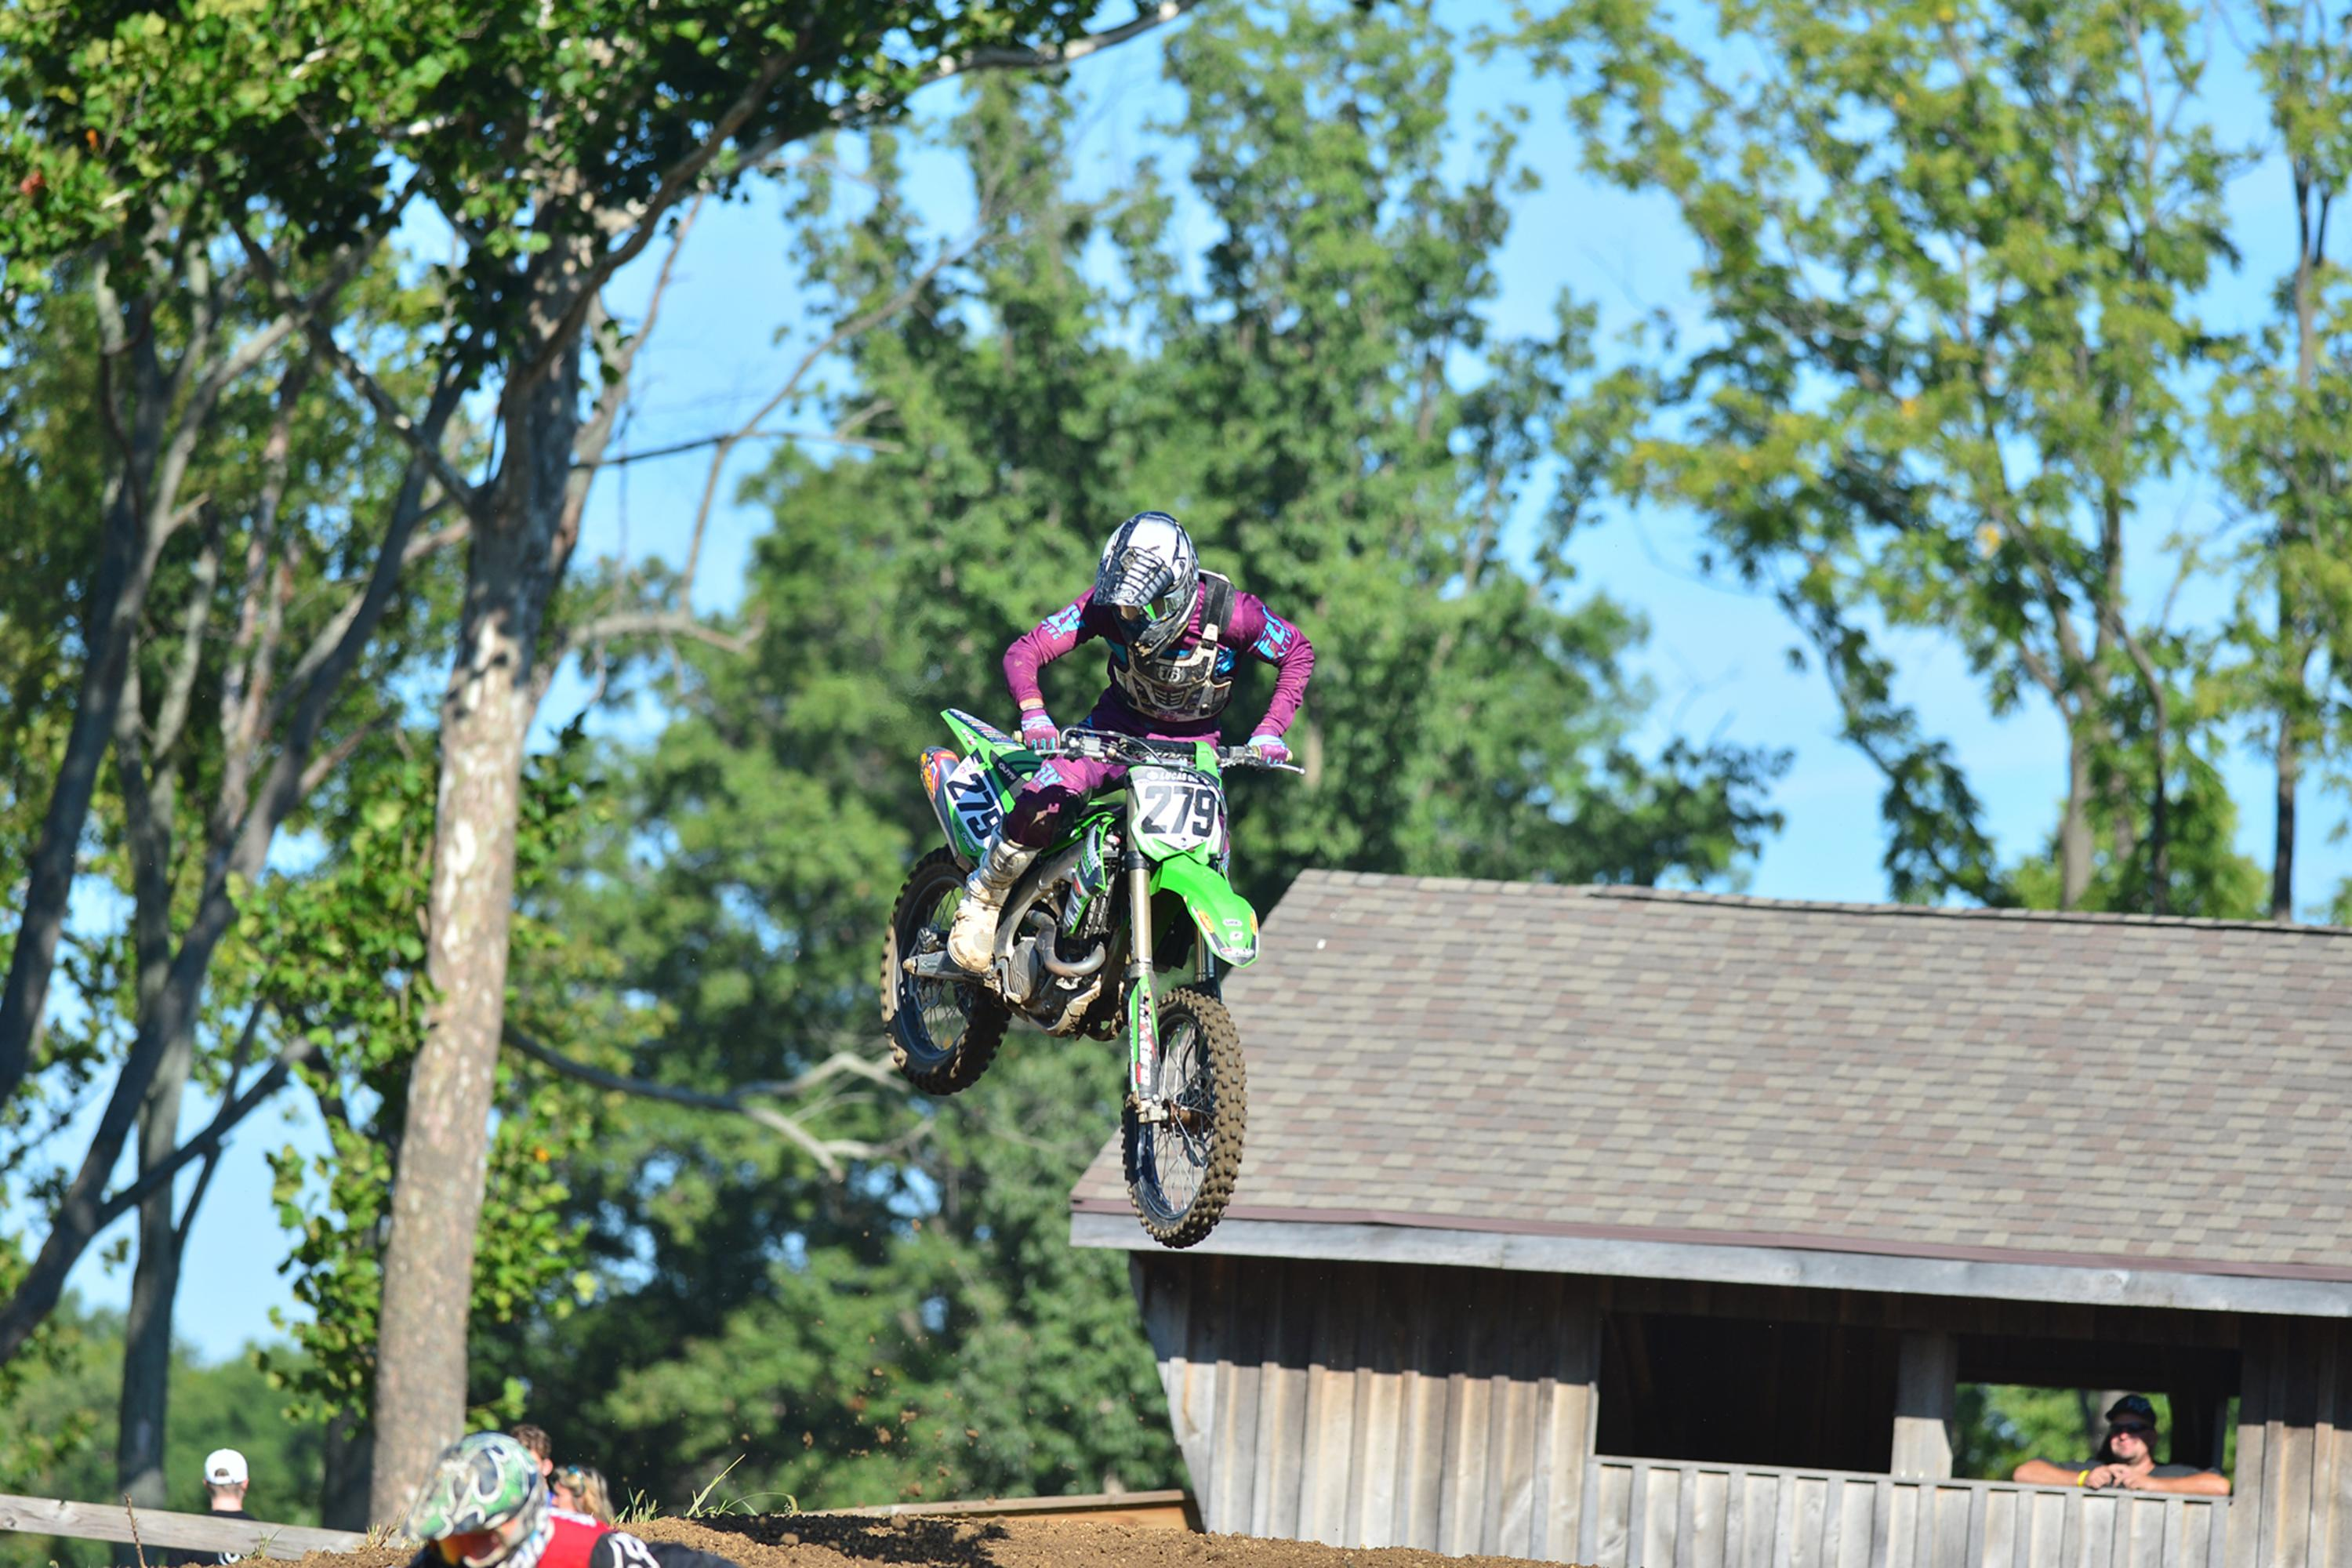 Amateur Racers Shine at The guaranteed Rate Ironman Amateur MX Days in Indiana